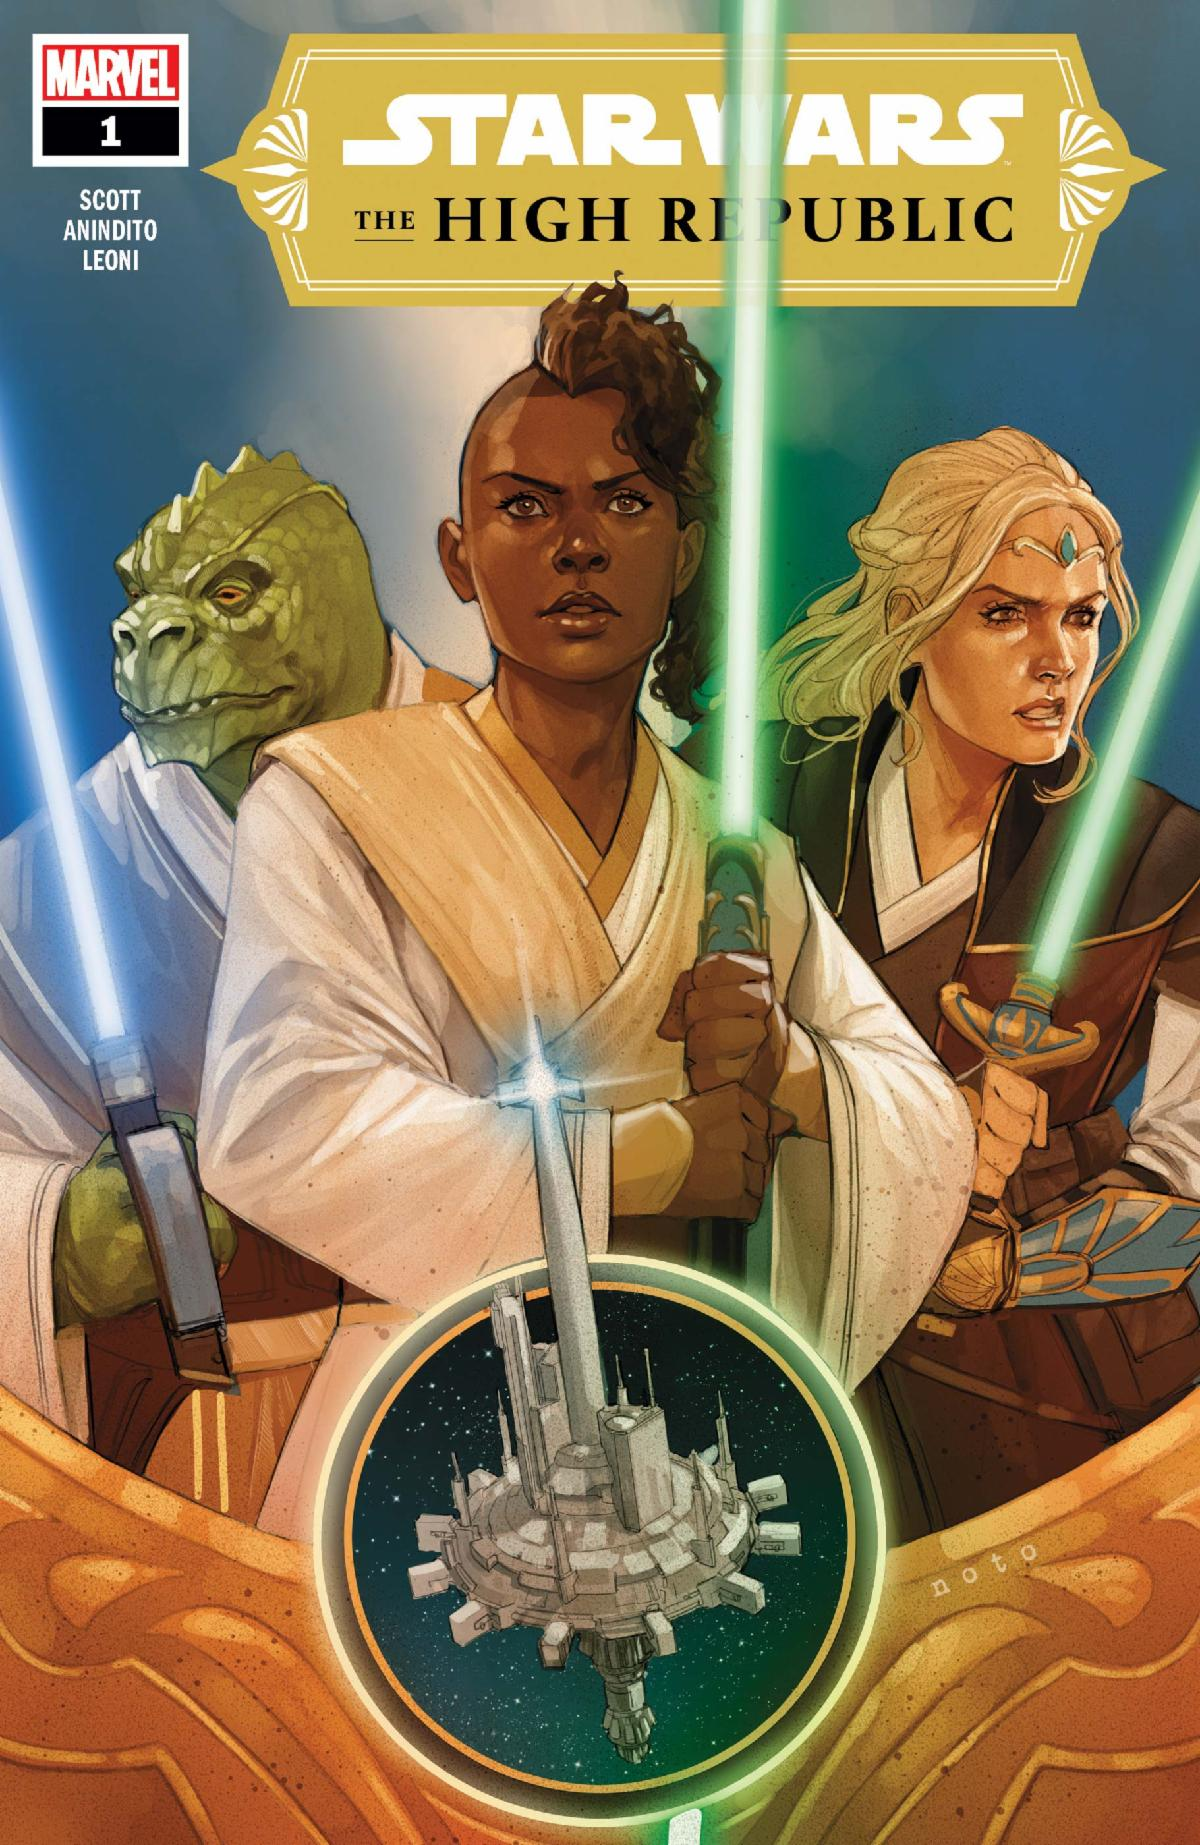 Star Wars: The High Republic by Mark Morales